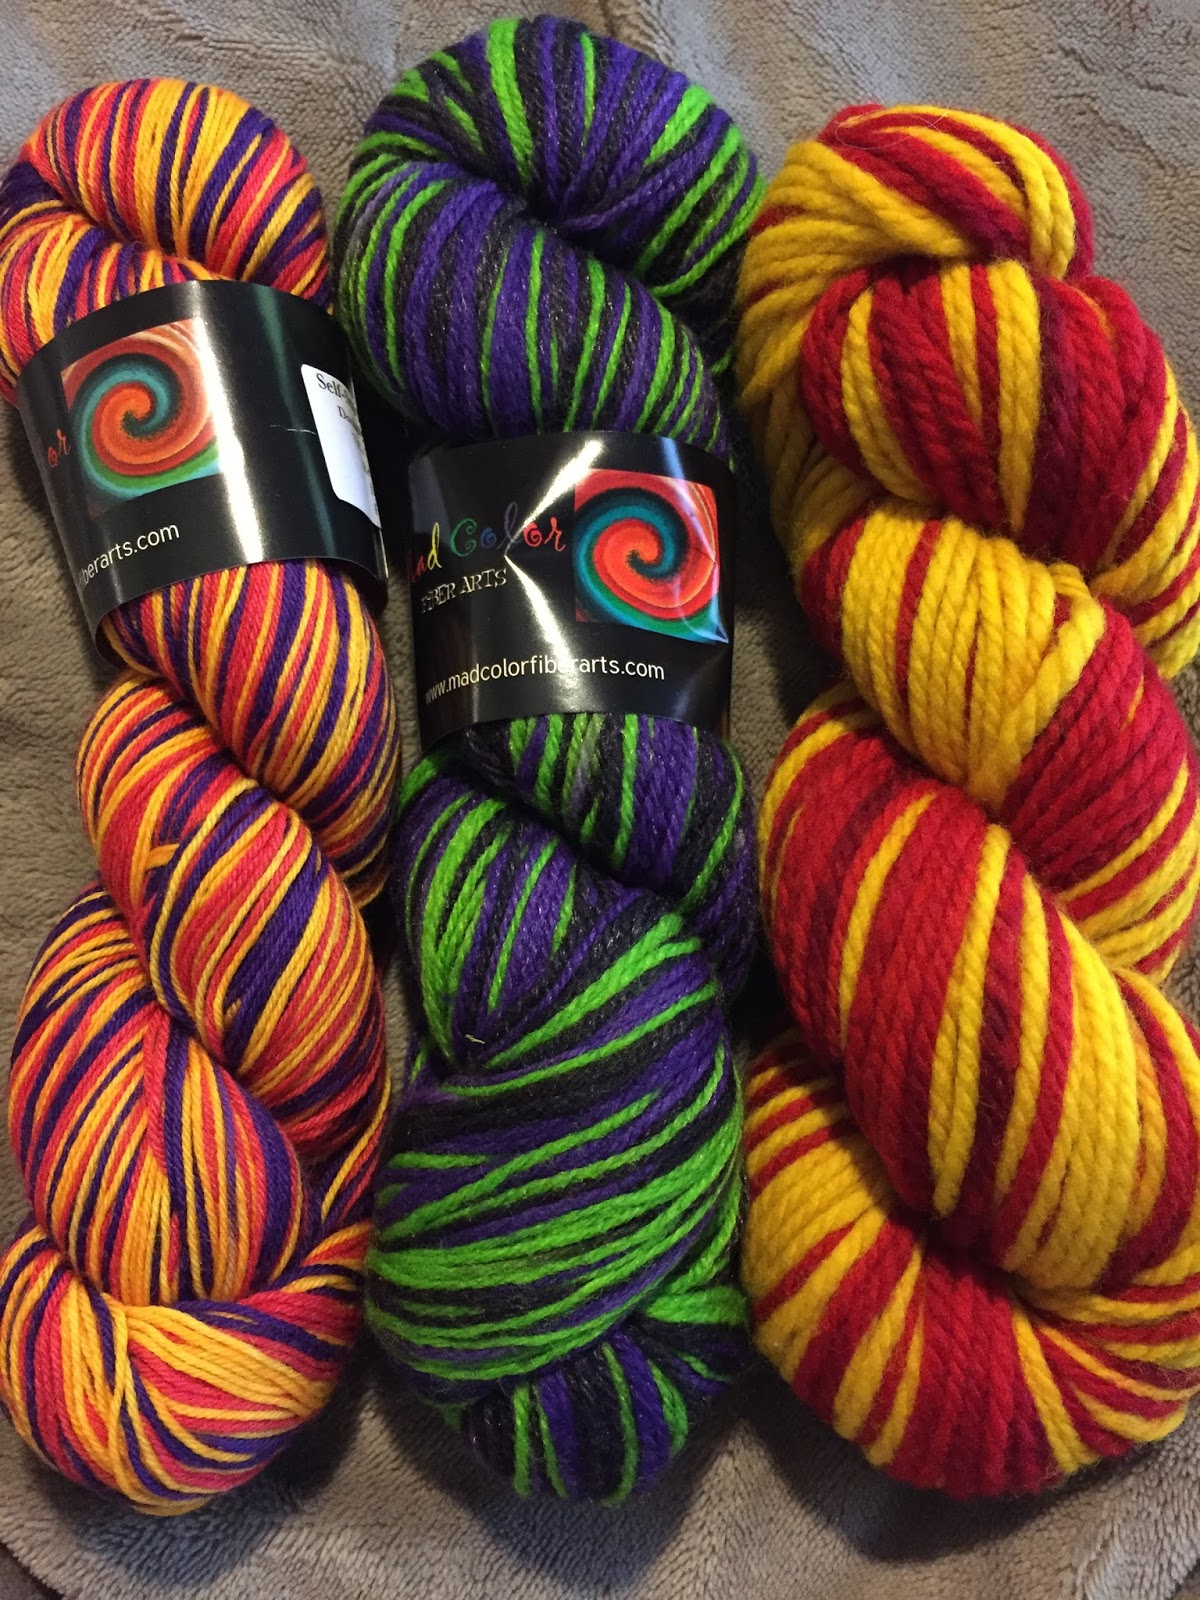 two sisters yarn company the last jedi gothic rainbow rock and string creations derby day 16 appalachian autumn and i found more mad color roam